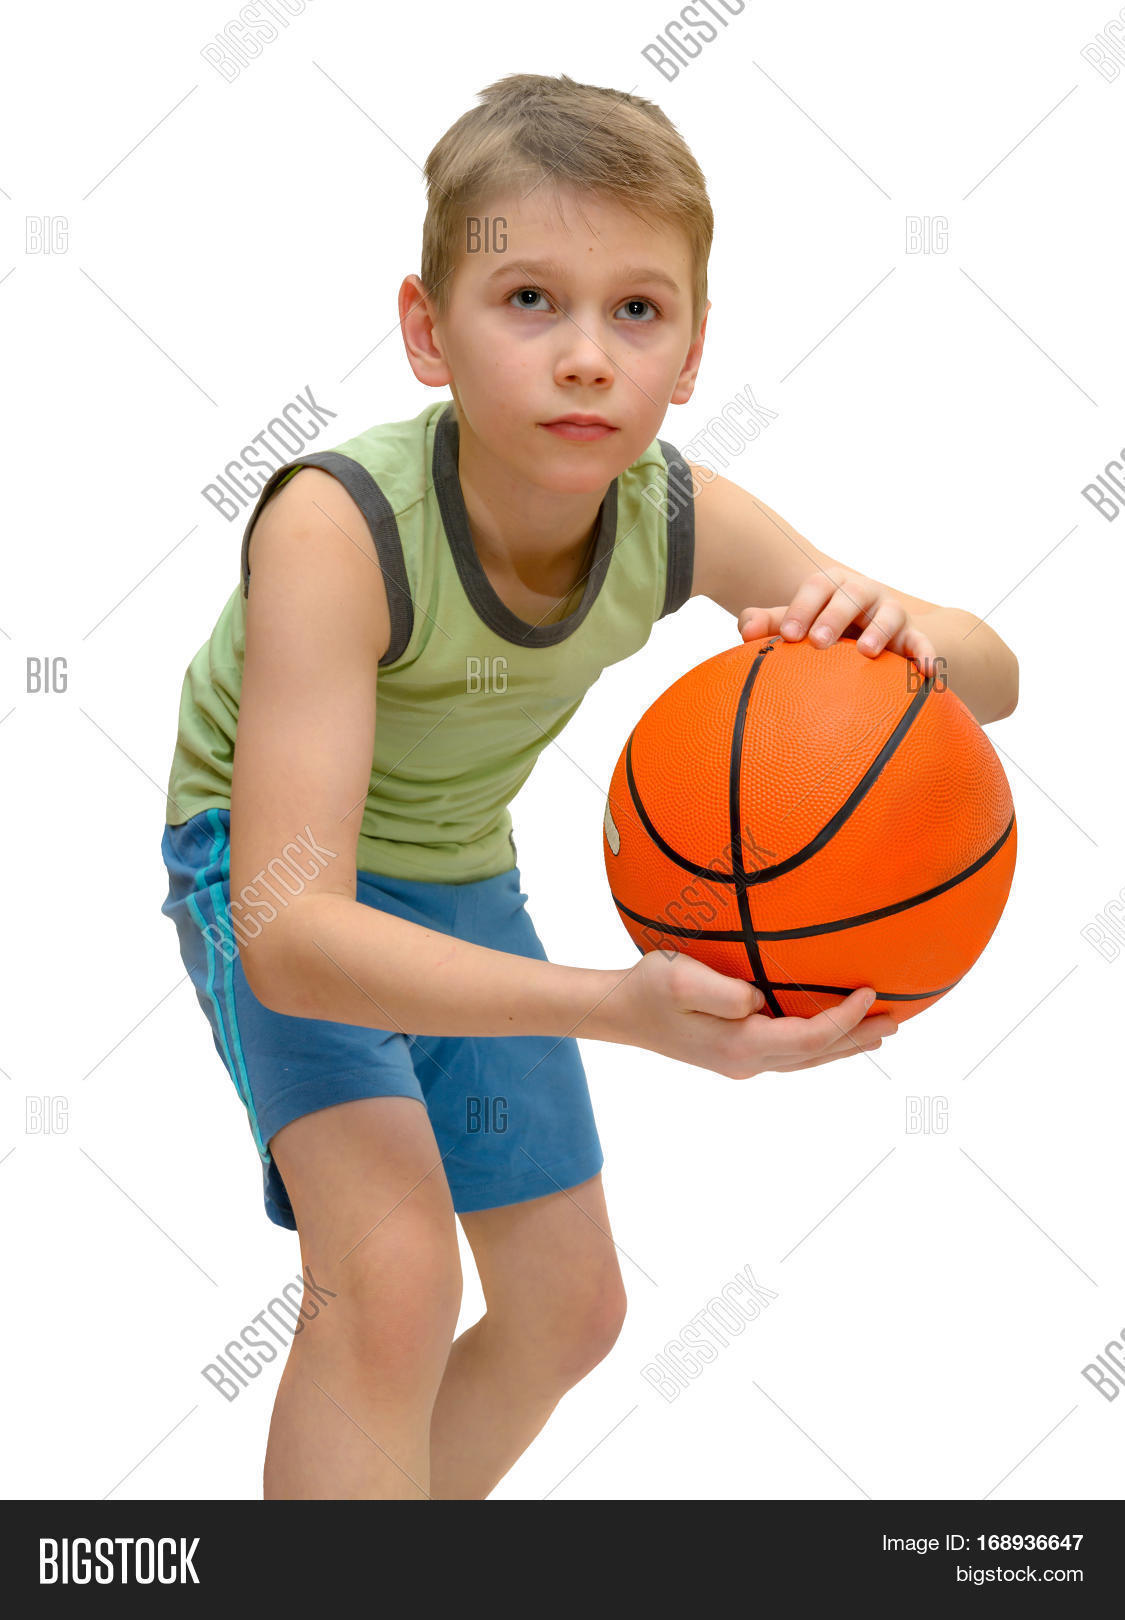 Little Boy 9 Years Old Image Amp Photo Free Trial